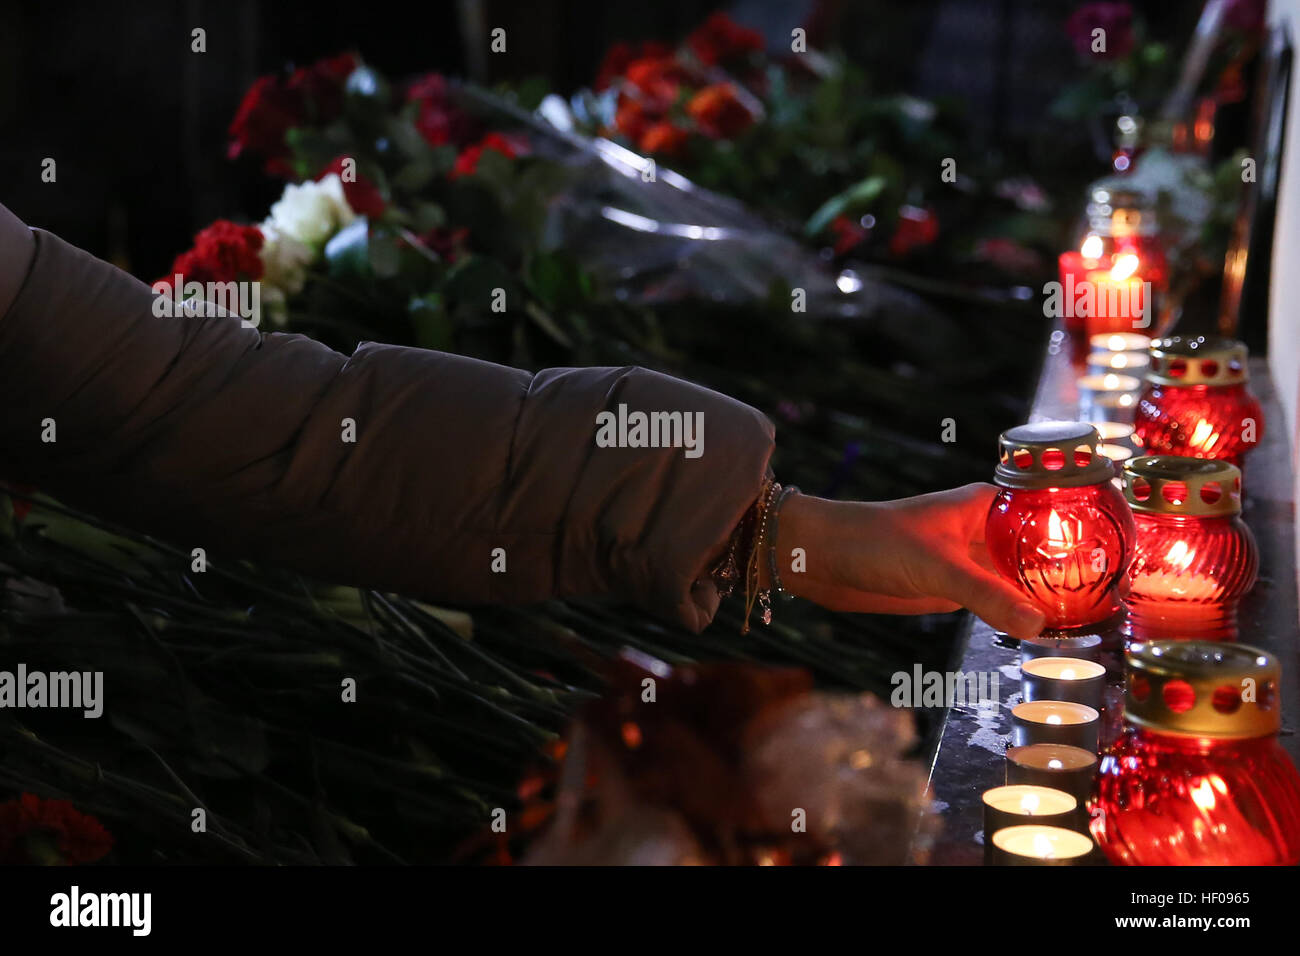 Moscow, Russia. 25th December, 2016. People lays candles near Alexandrov Hall, a rehearsal room of the Alexandrov - Stock Image